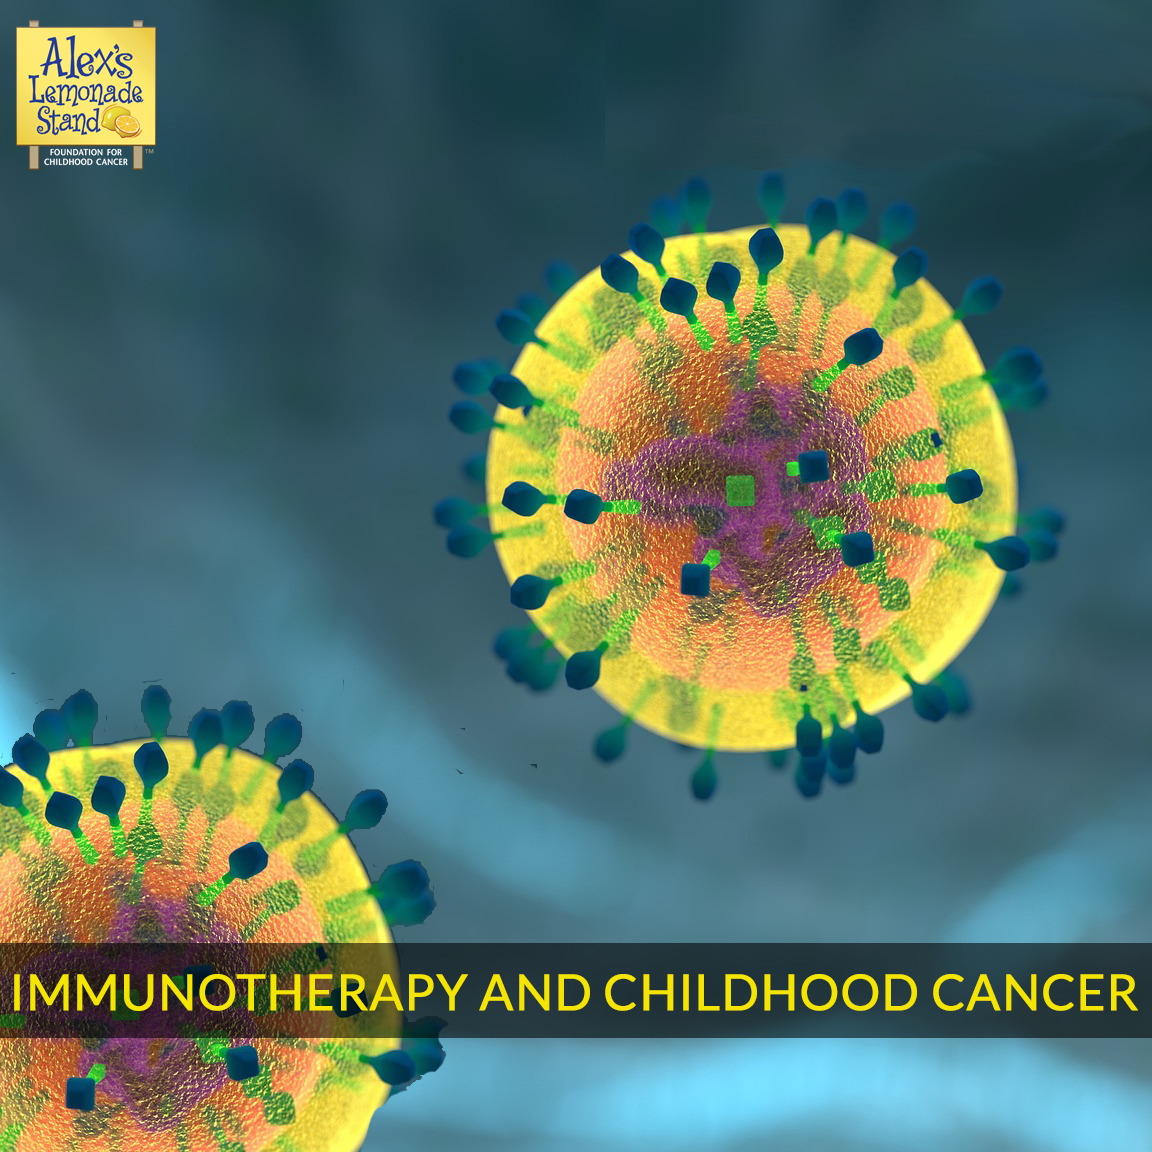 Immunotherapy offers hope in the fight against childhood cancer. Read more about immunotherapy childhood cancer research